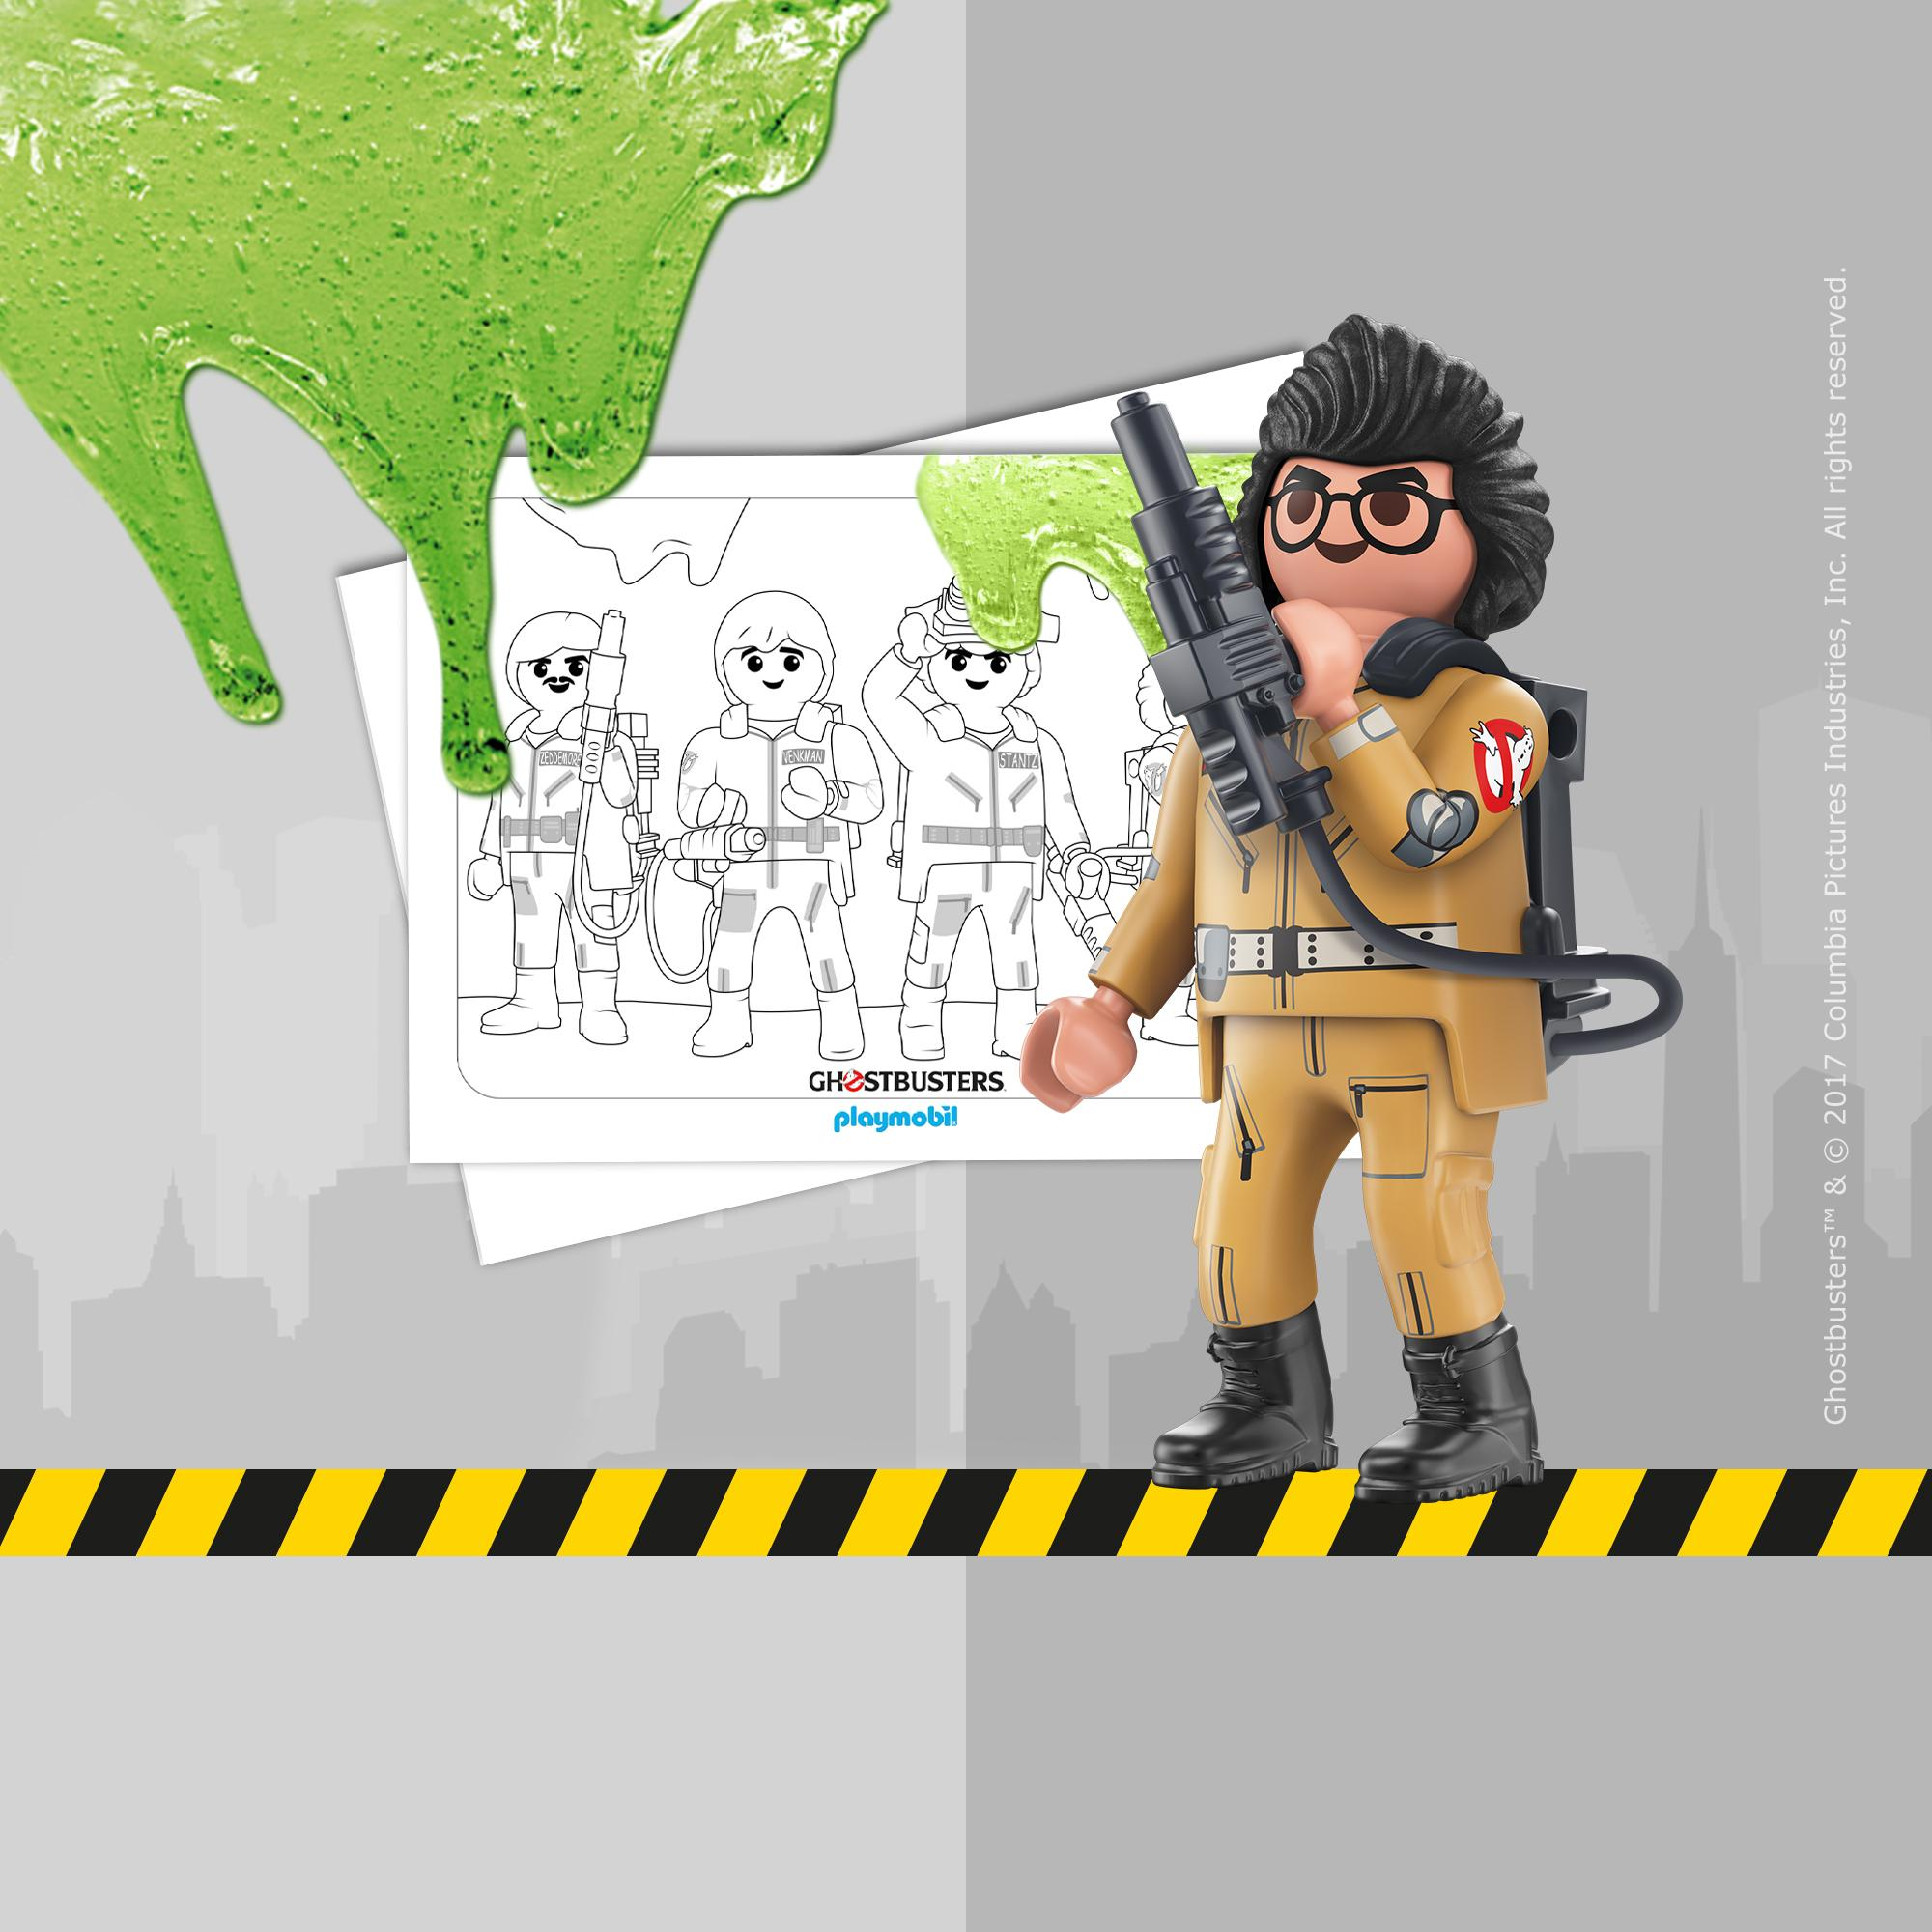 Coloriage Playmobil Ghostbusters Playmobil 174 France